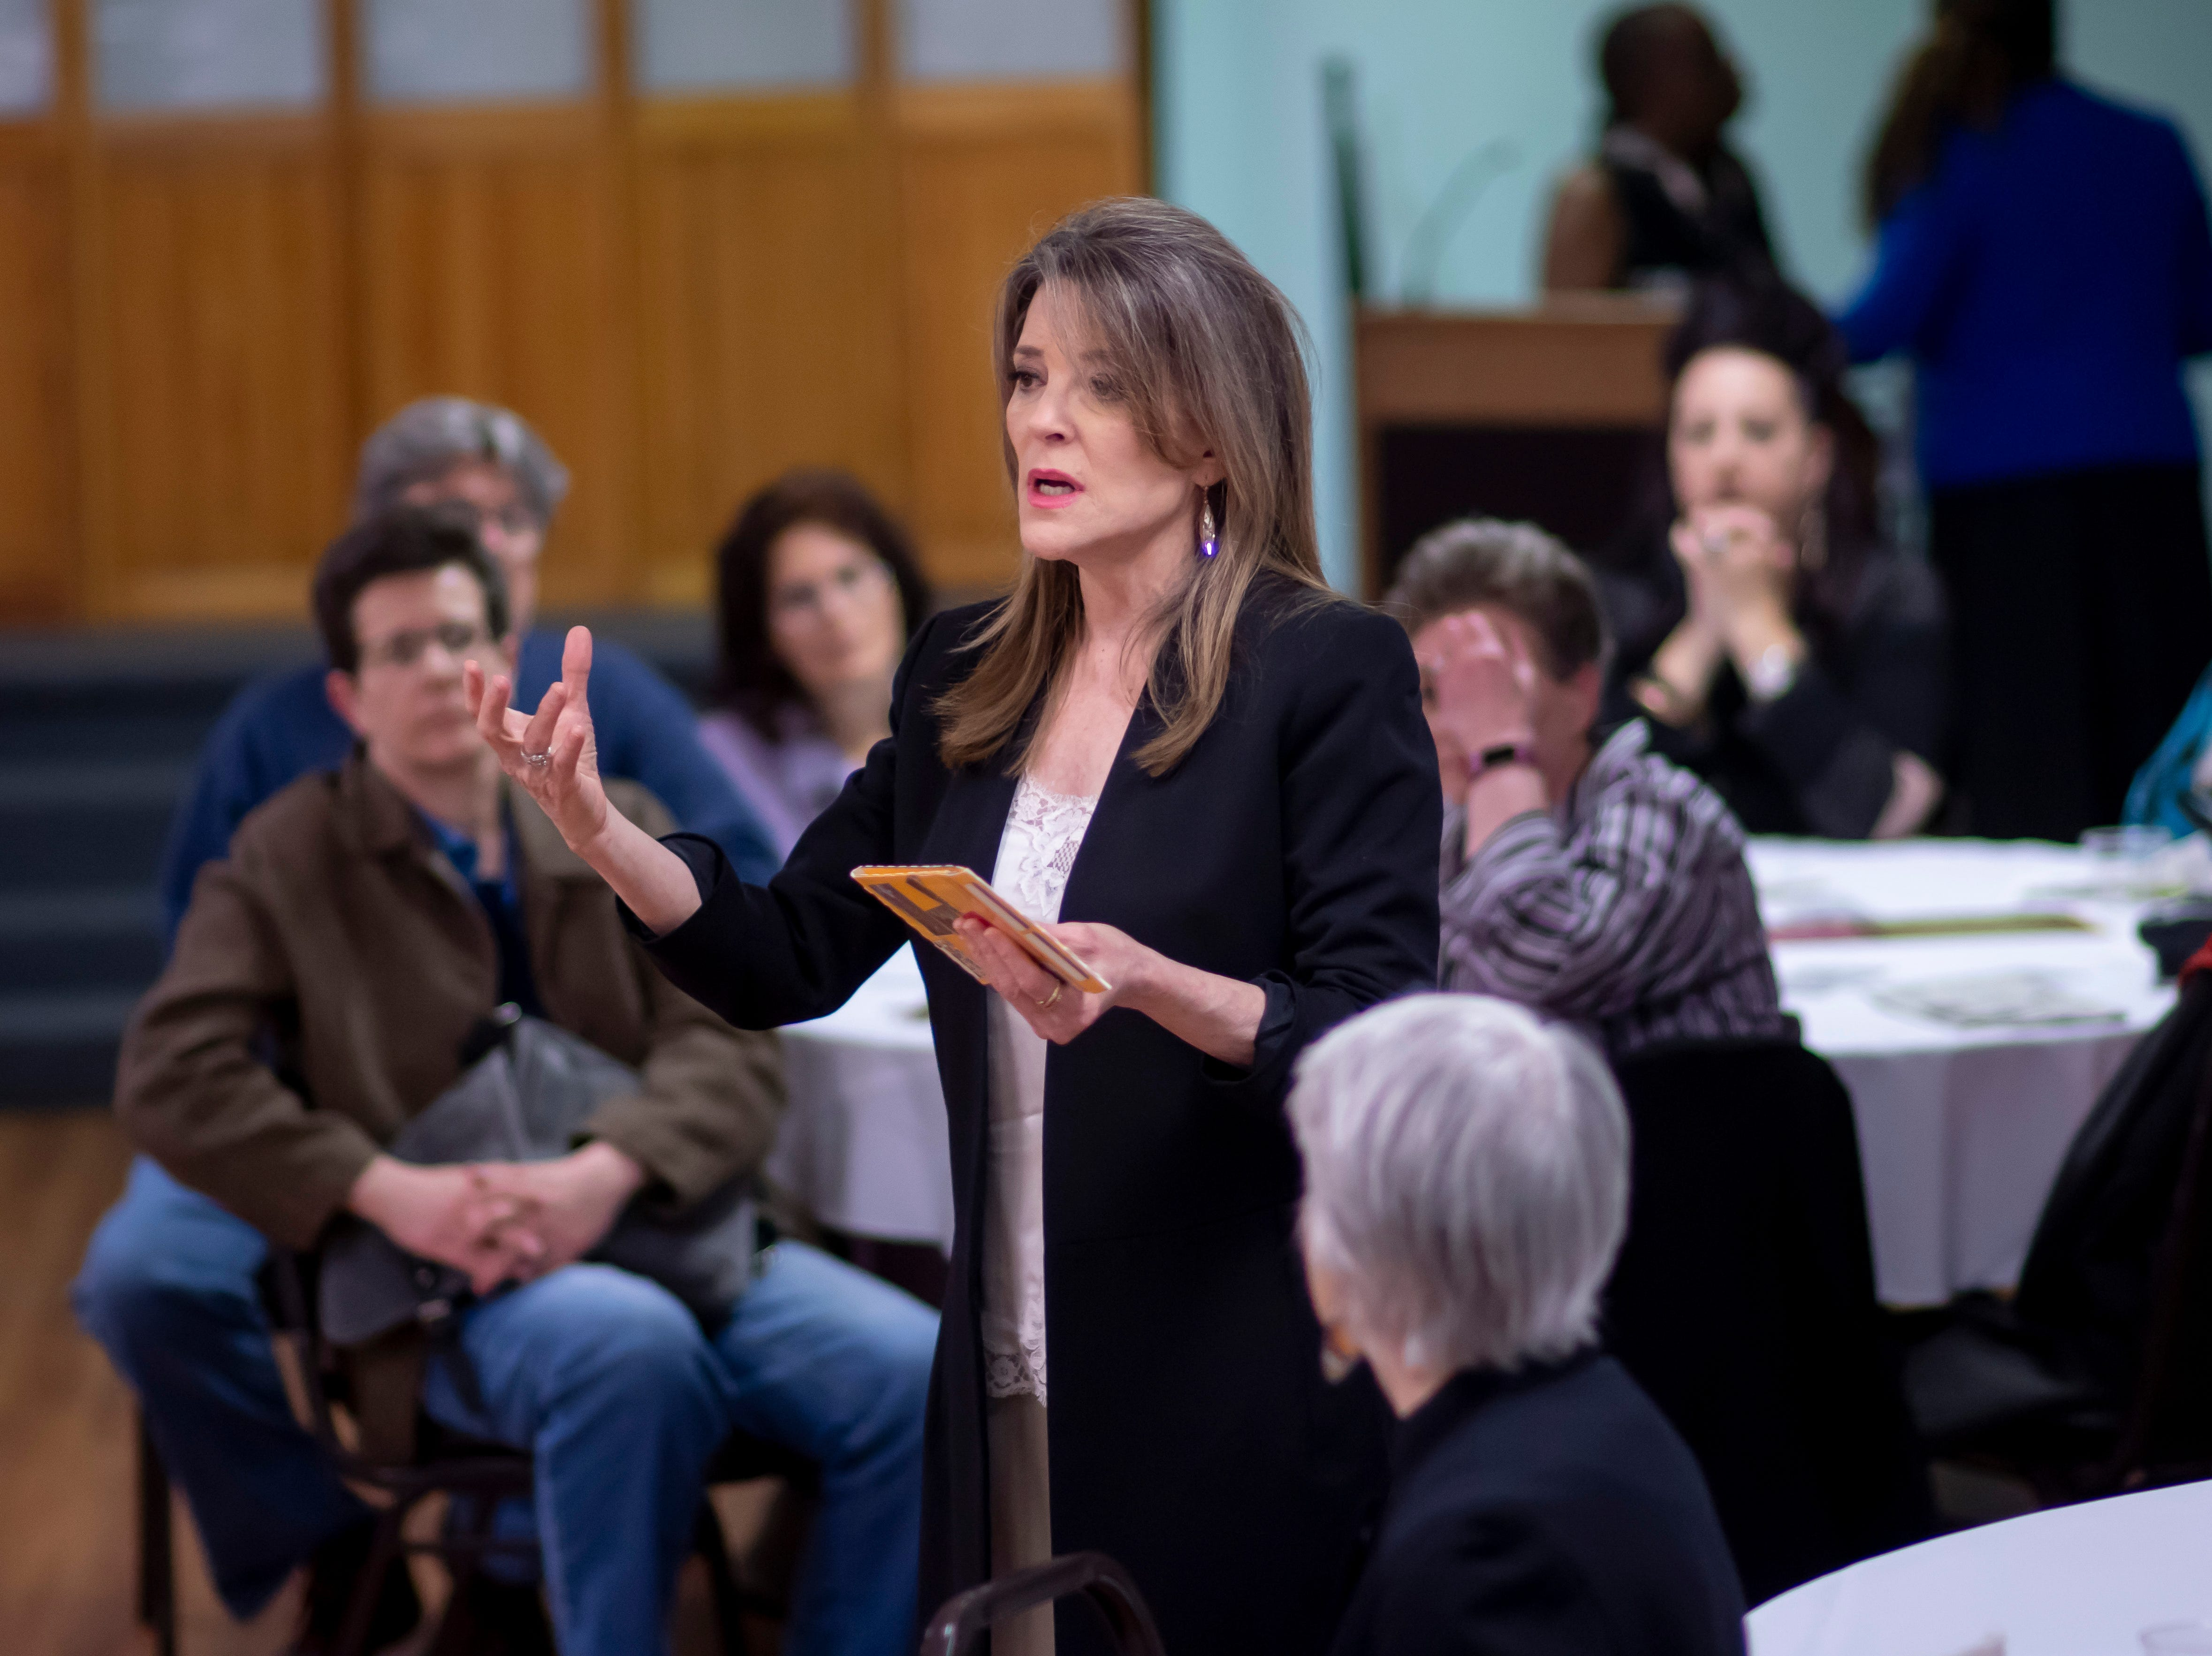 Author and Presidential candidate Marianne Williamson, chats during a VIP reception before a town hall at the Detroit Unity Temple, in Detroit, May 13, 2019.